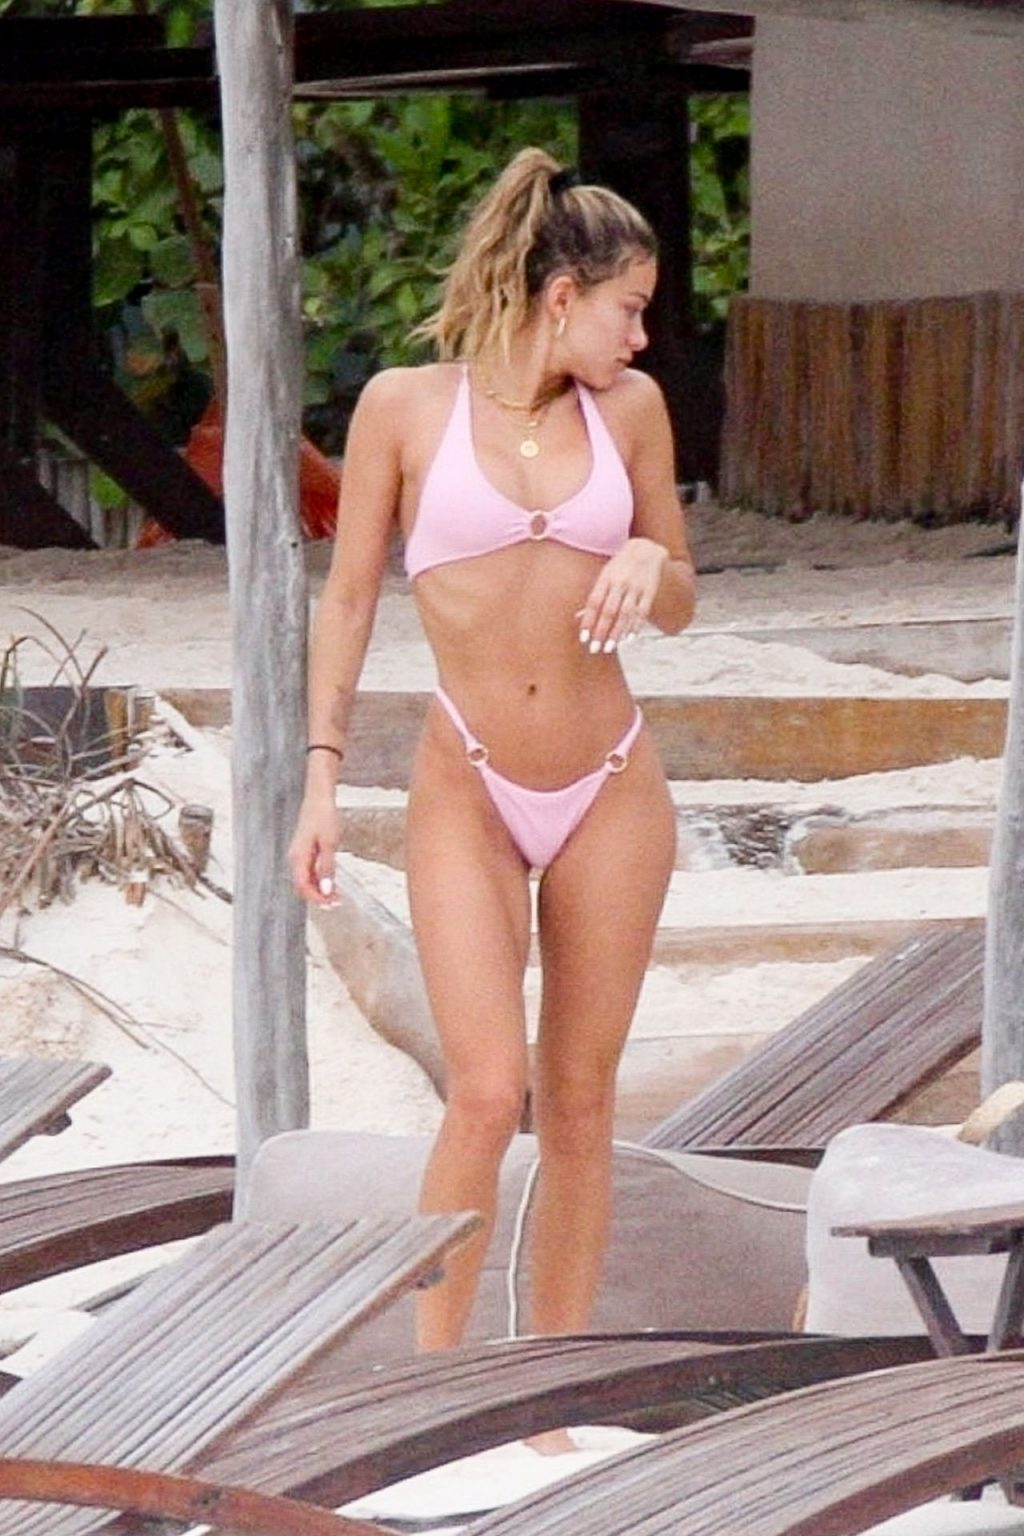 Cindy Prado Shows Off Her Figure in a Pink Bikini (38 Photos)